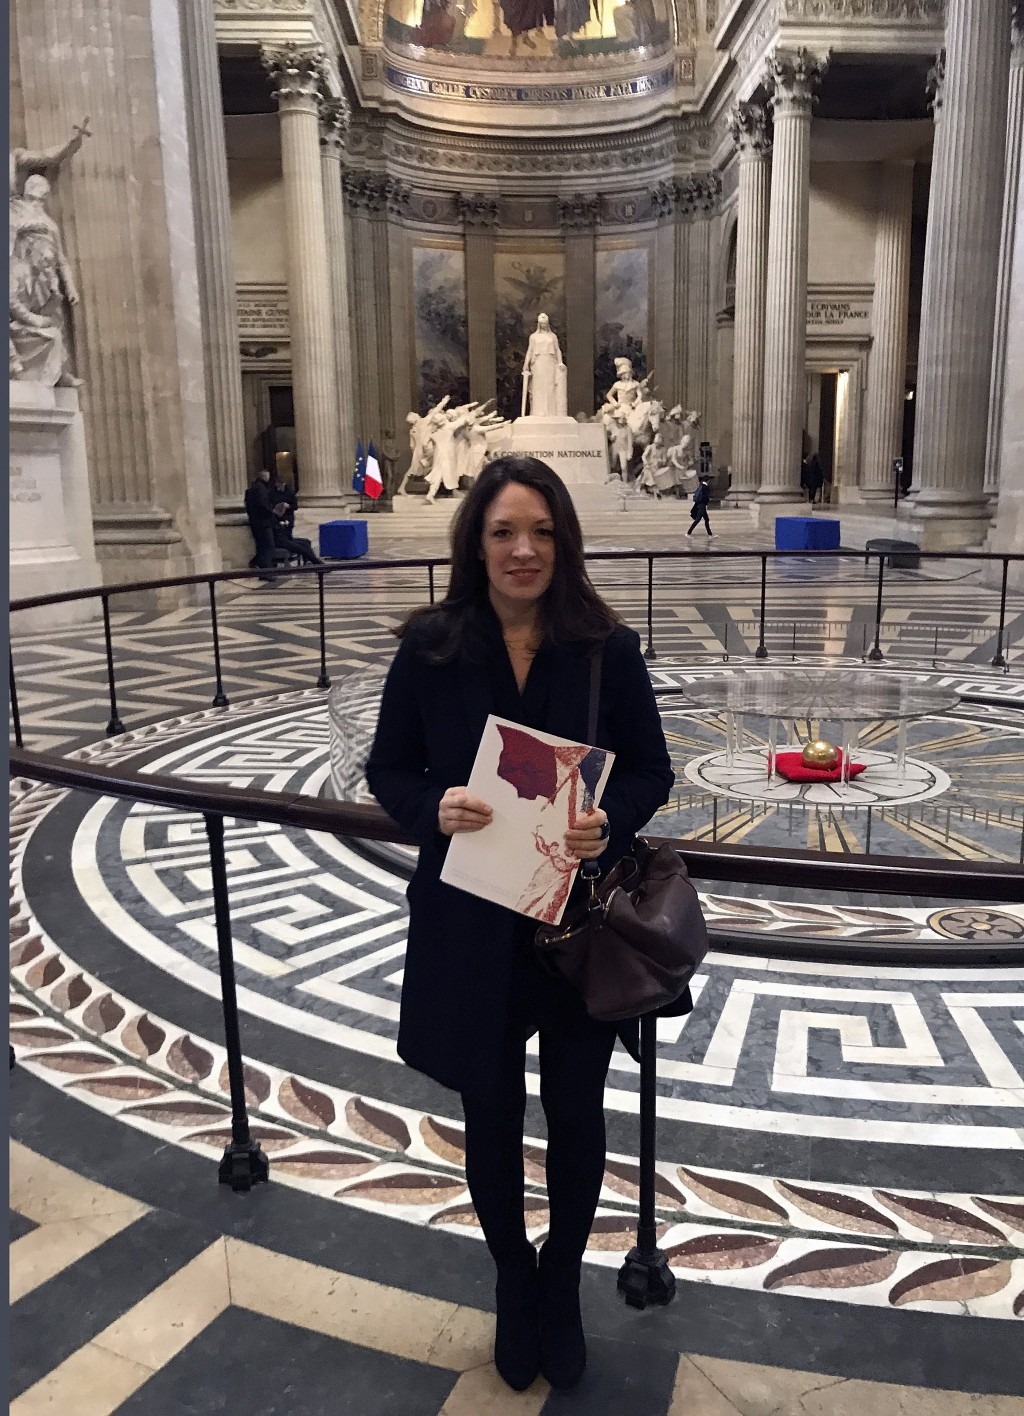 Britain's Catherine Norris Trent holds her document after a naturalization ceremony in Paris' Pantheon monument, Thursday, March 21, 2019. With the lo